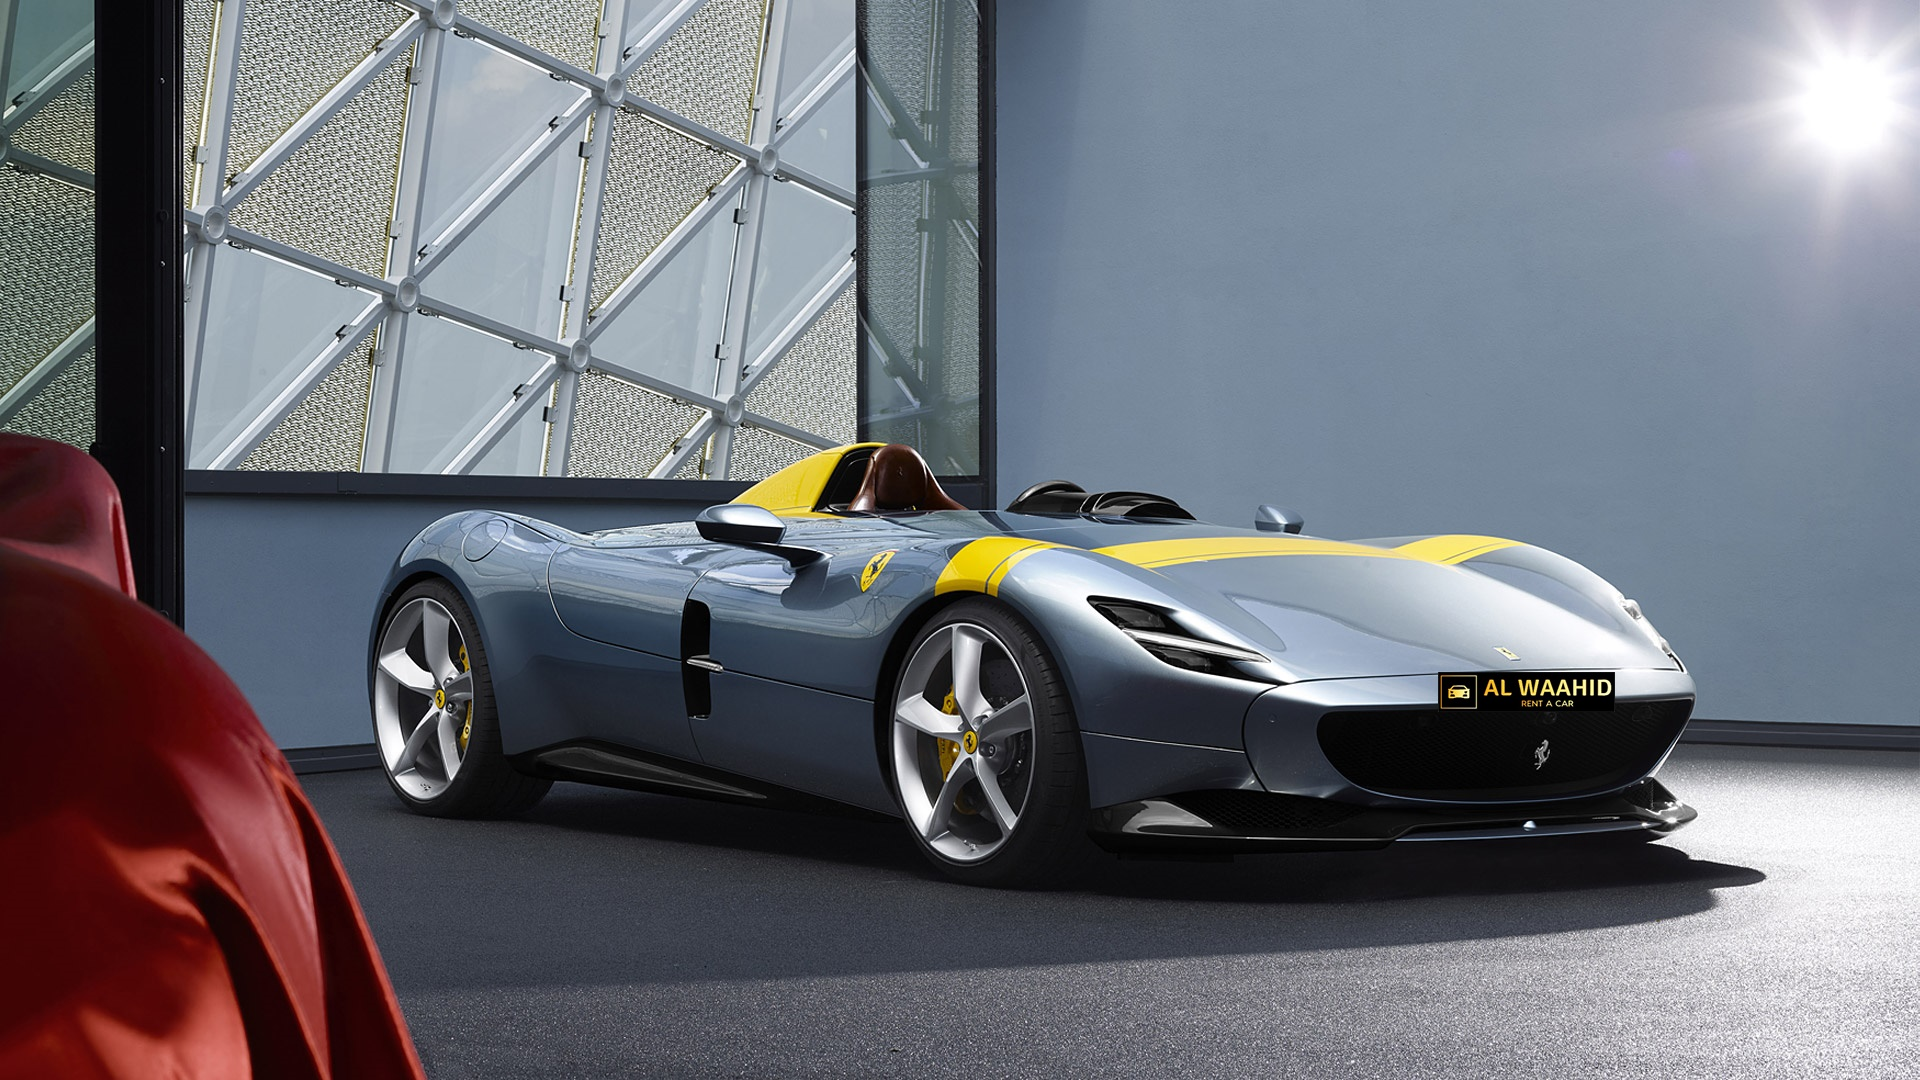 Ferrari Monza Sp1 2019 Rental Dubai Luxury Car Rental Dubai